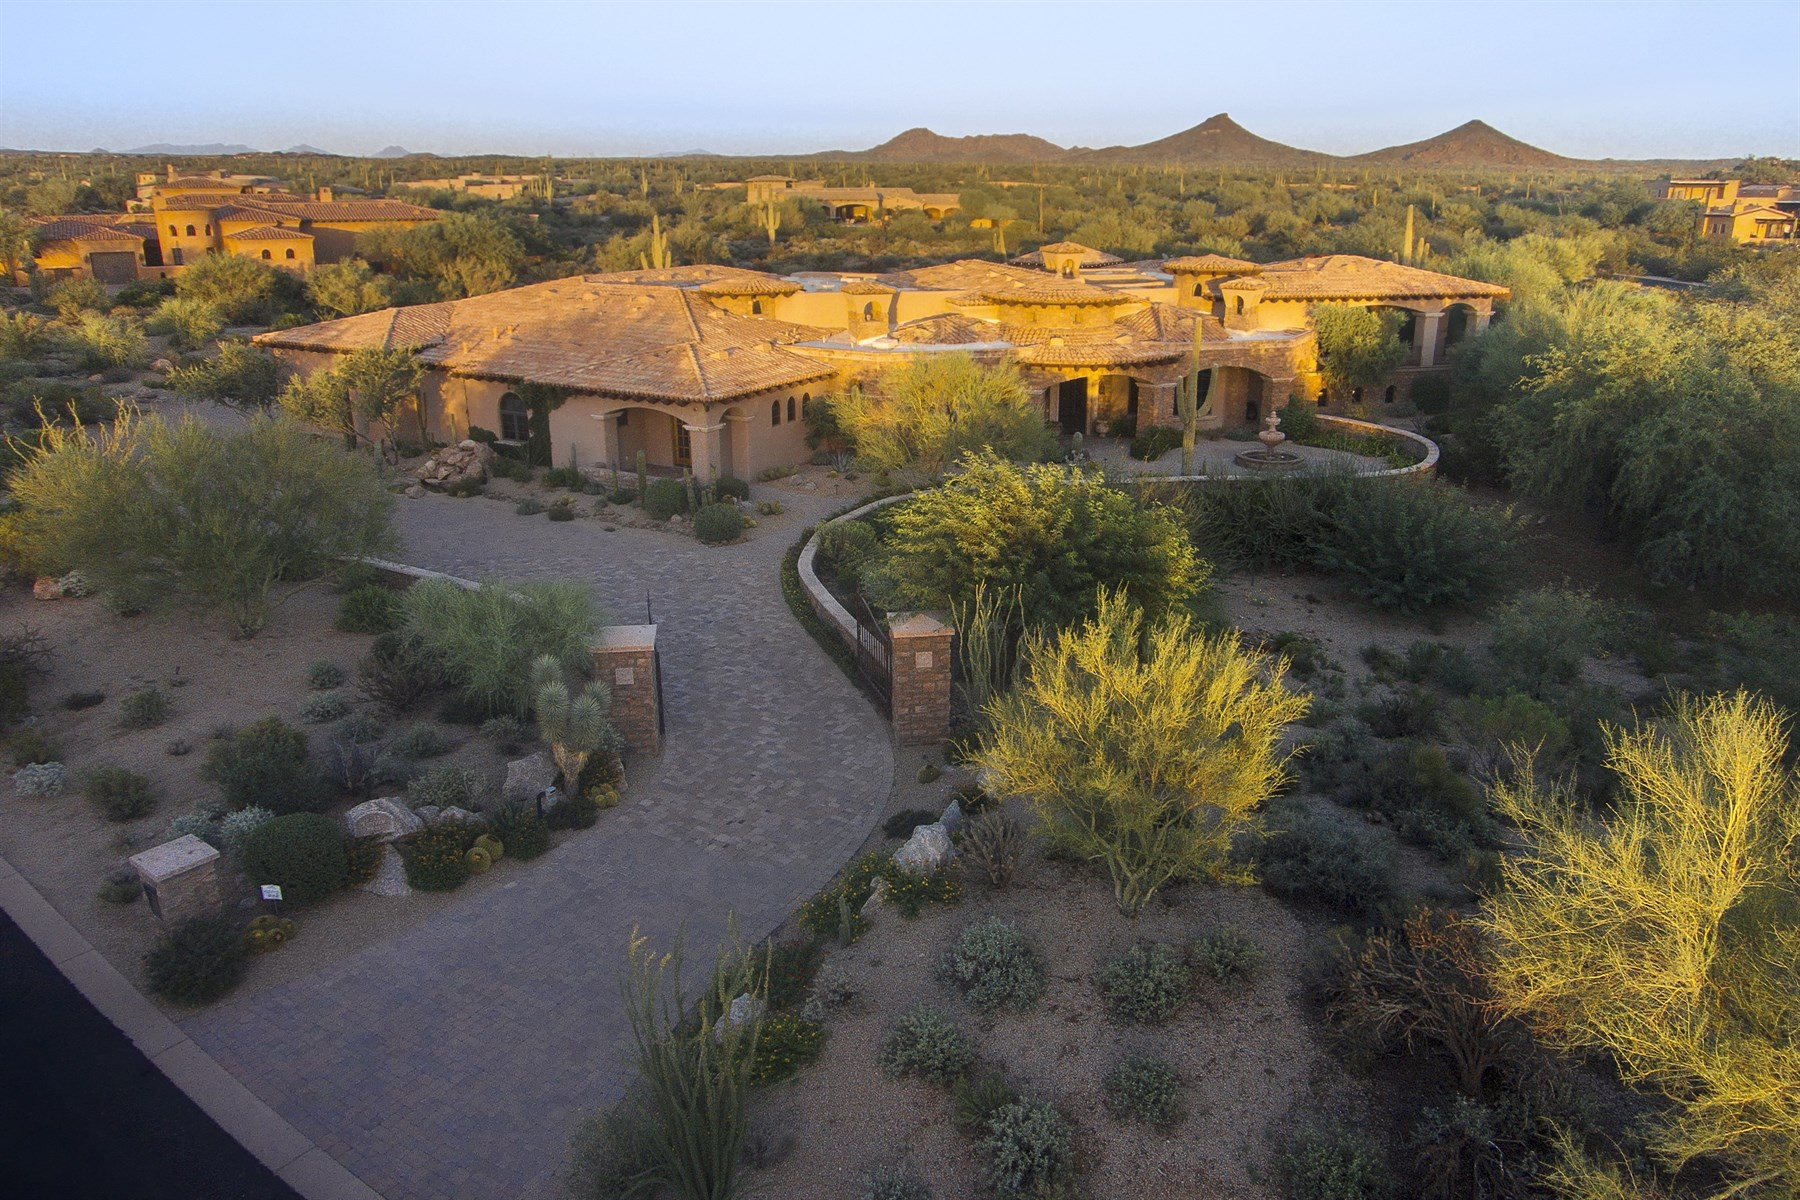 一戸建て のために 売買 アット Stunning Private Estate On Nearly 3 Acres In Guard-Gated Whisper Rock Estates 8613 E Artisan Pass Scottsdale, アリゾナ, 85266 アメリカ合衆国